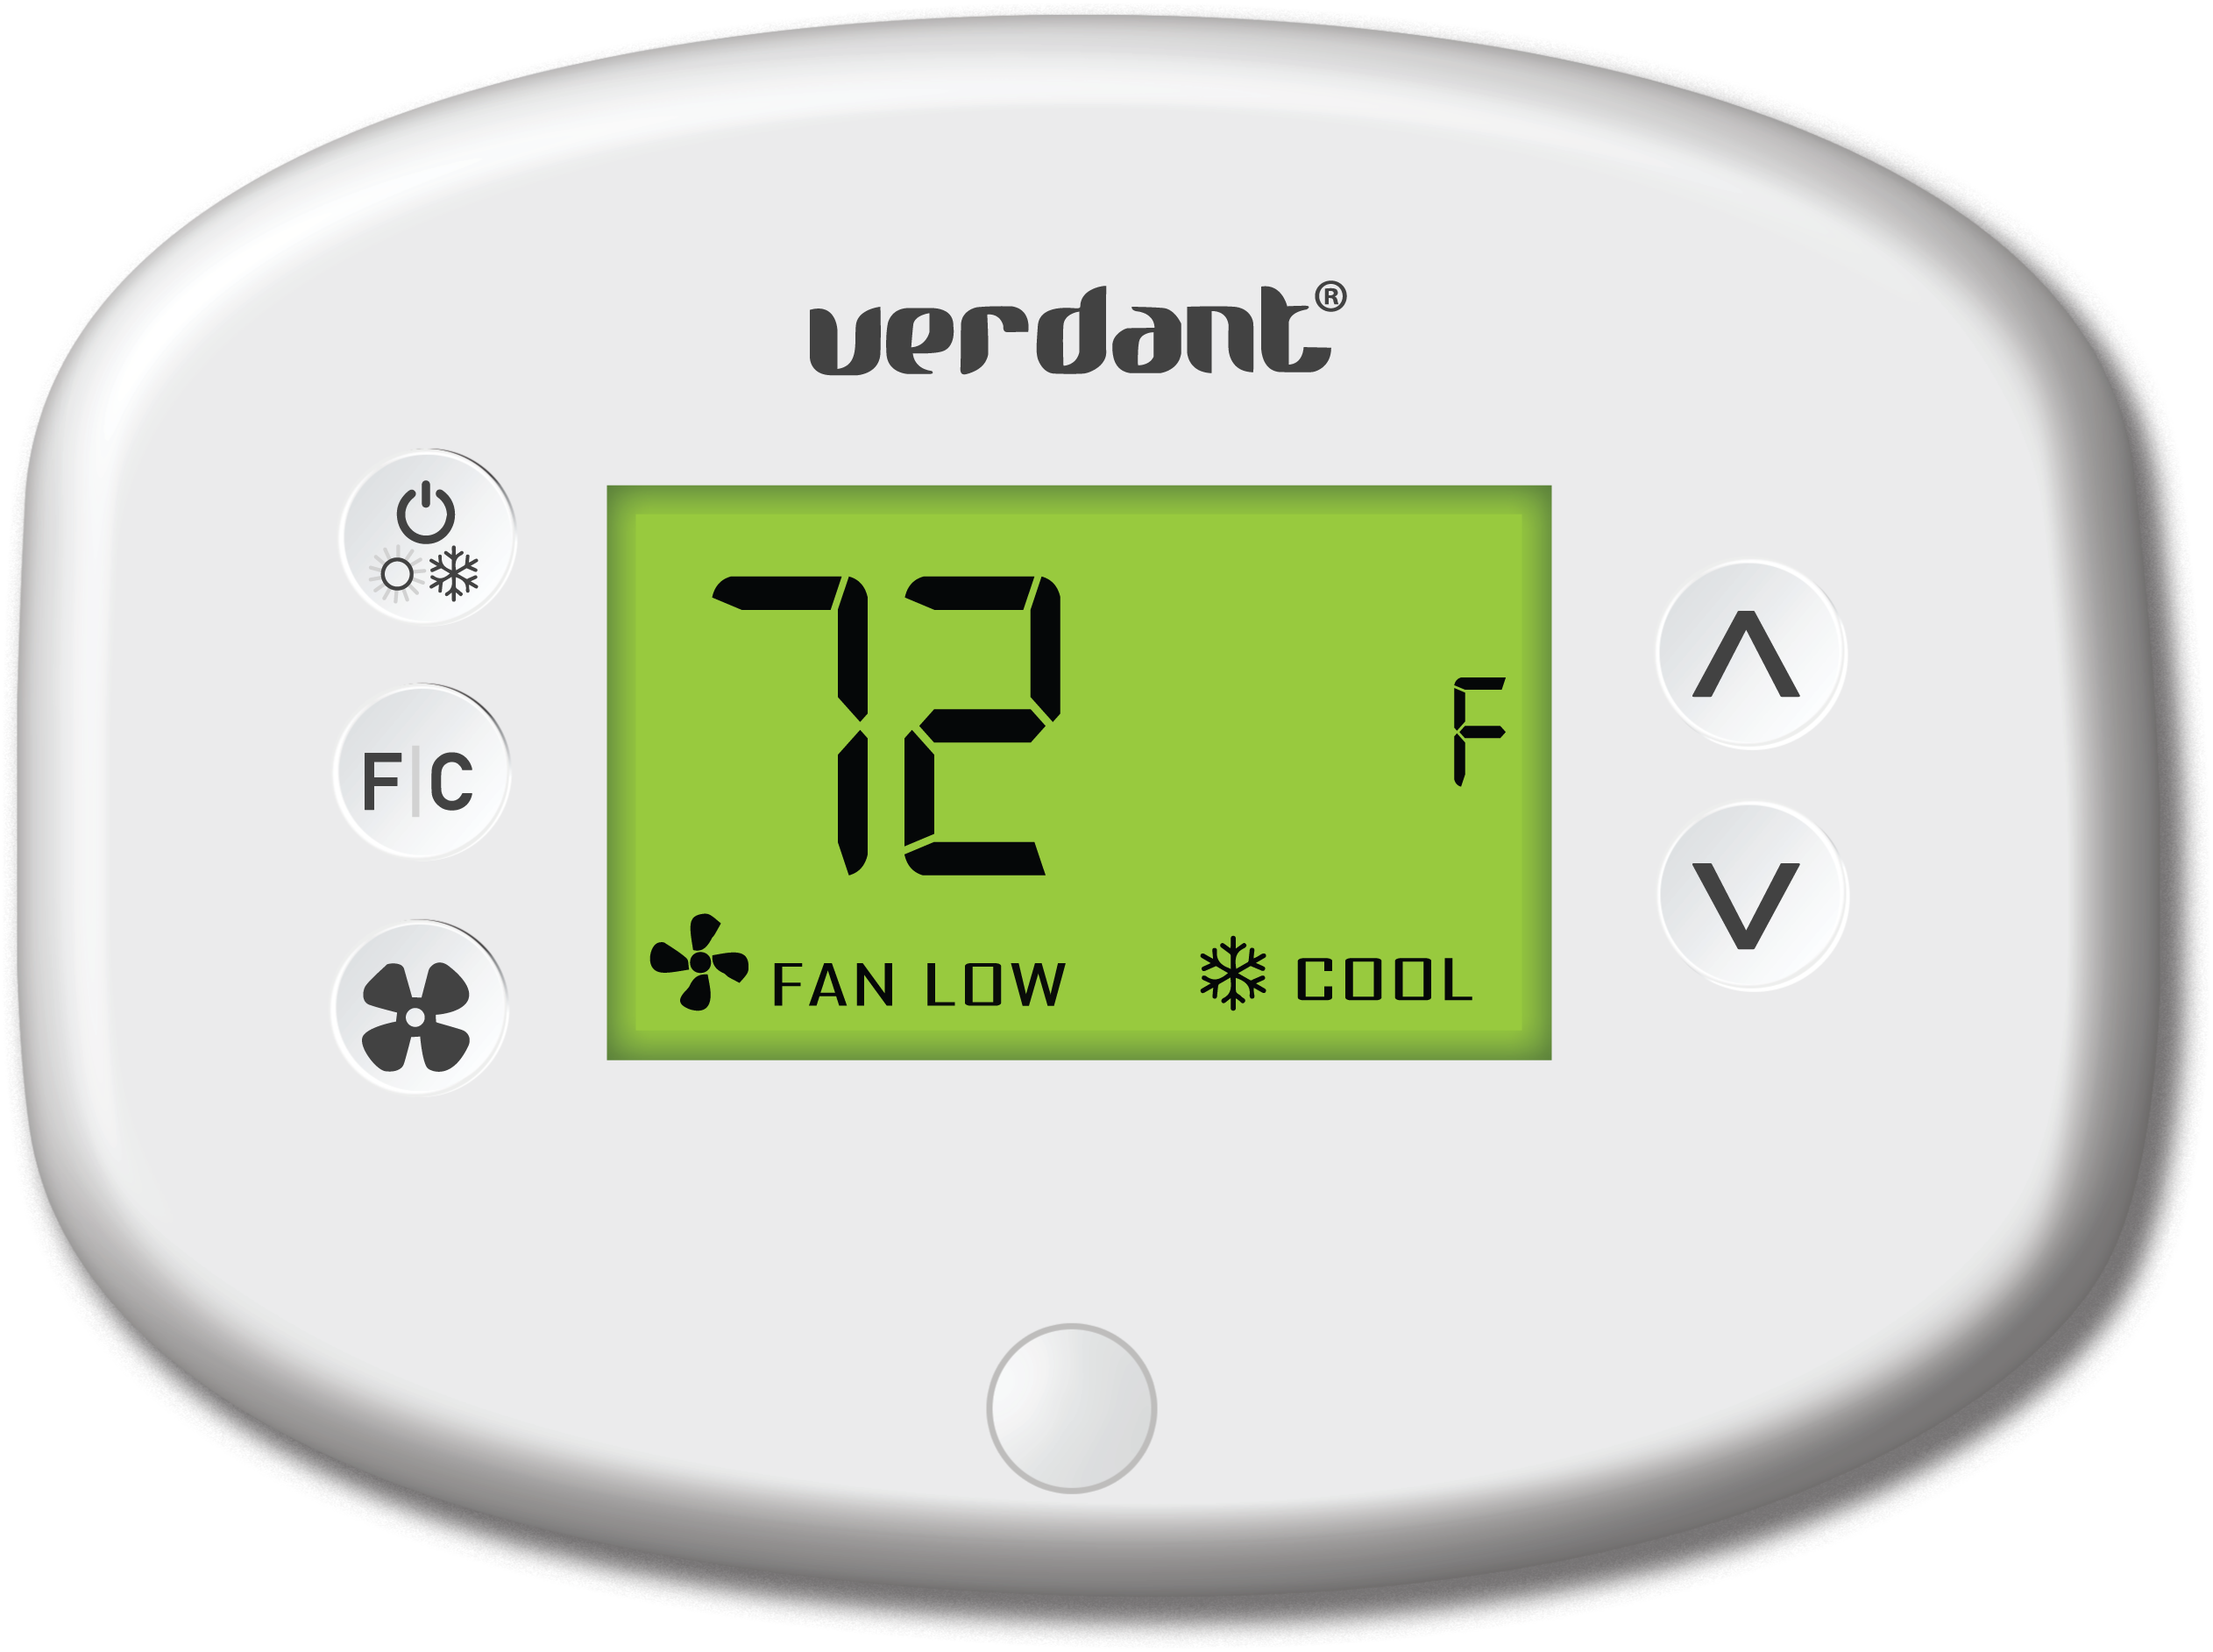 Verdant :: Energy Management Systems & Hotel Thermostats